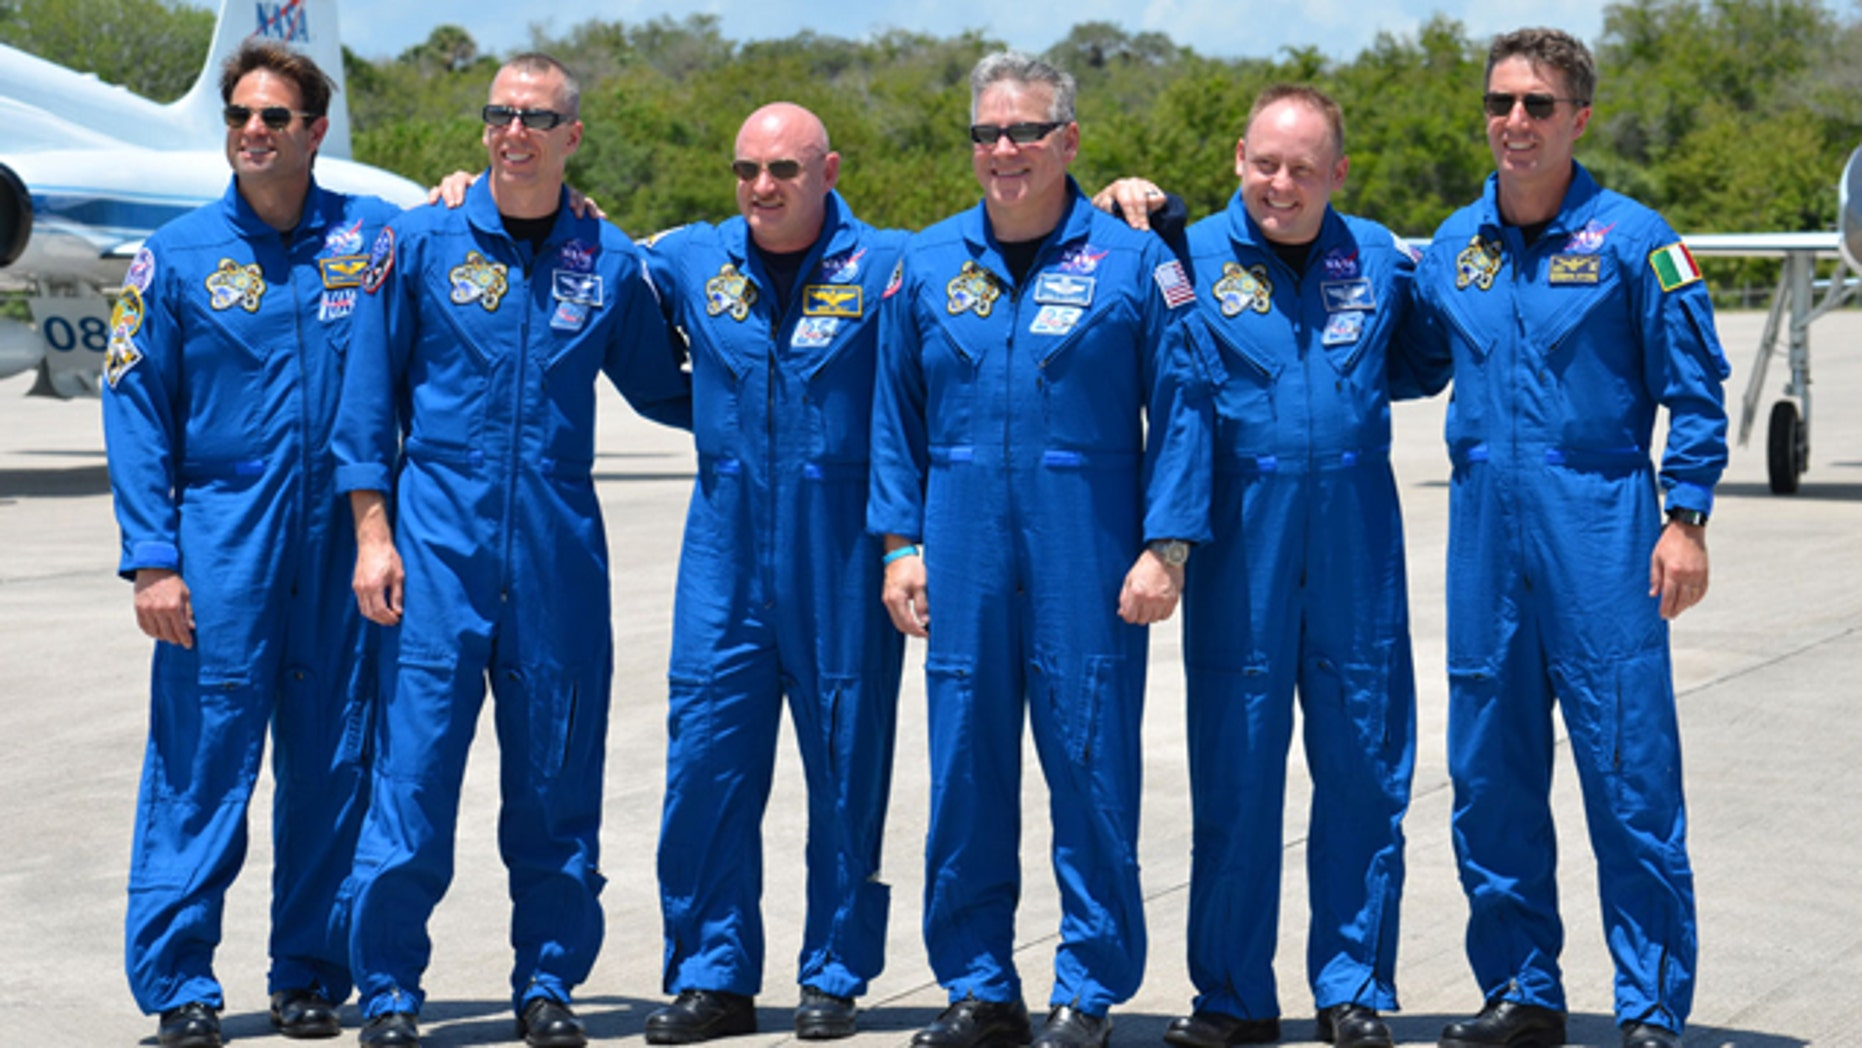 The space shuttle Endeavour's STS-134 crew arrives at NASA's Kennedy Space Center in Florida.